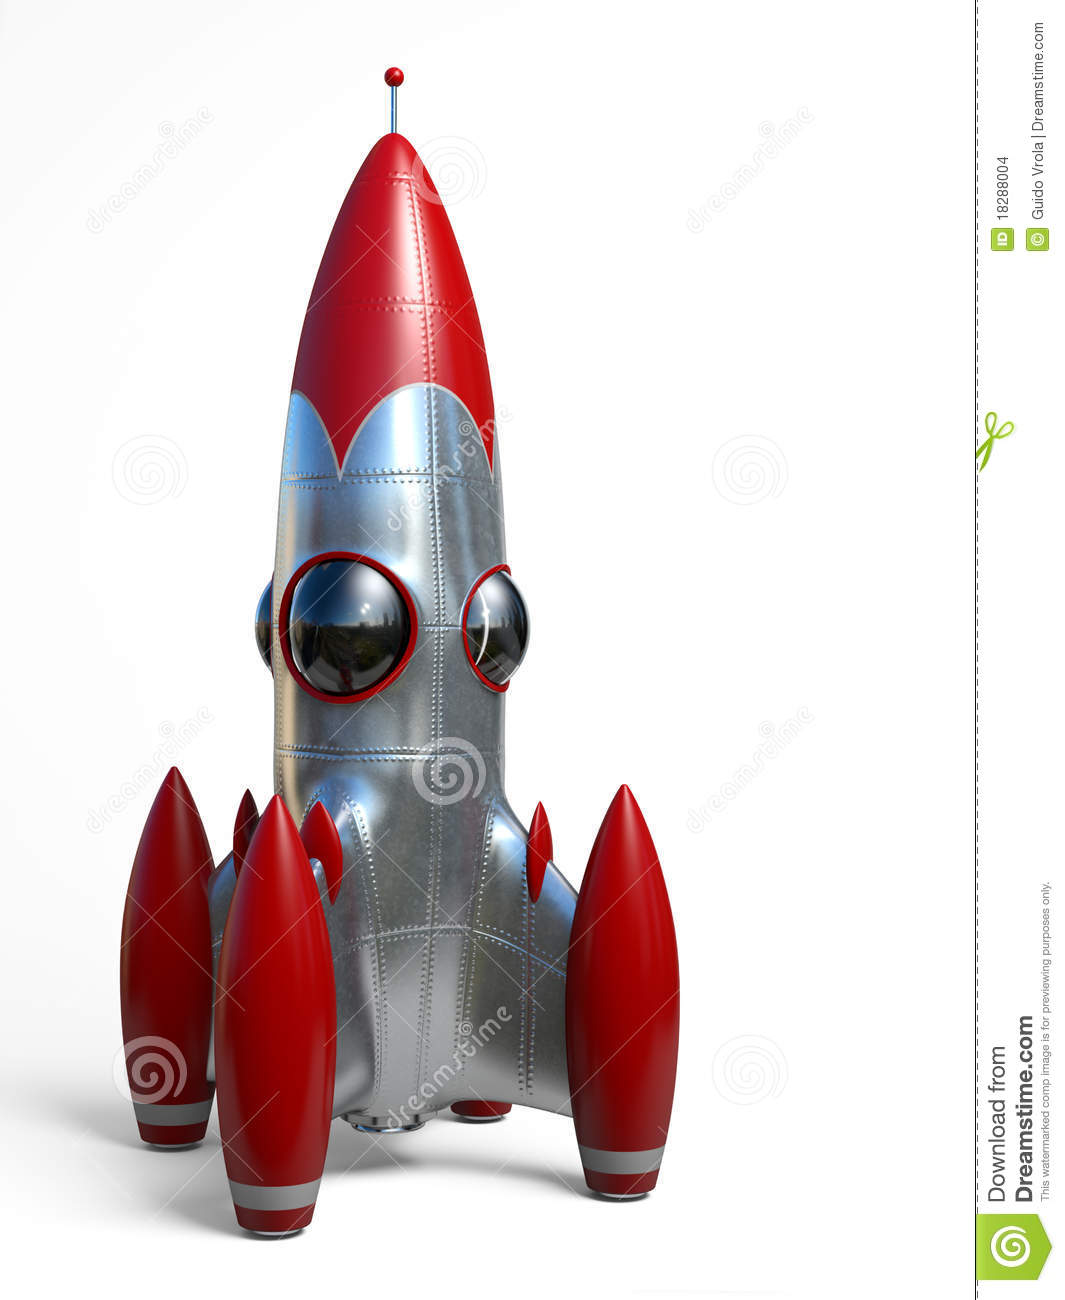 Space rocket stock illustration  Illustration of illustration - 18288004